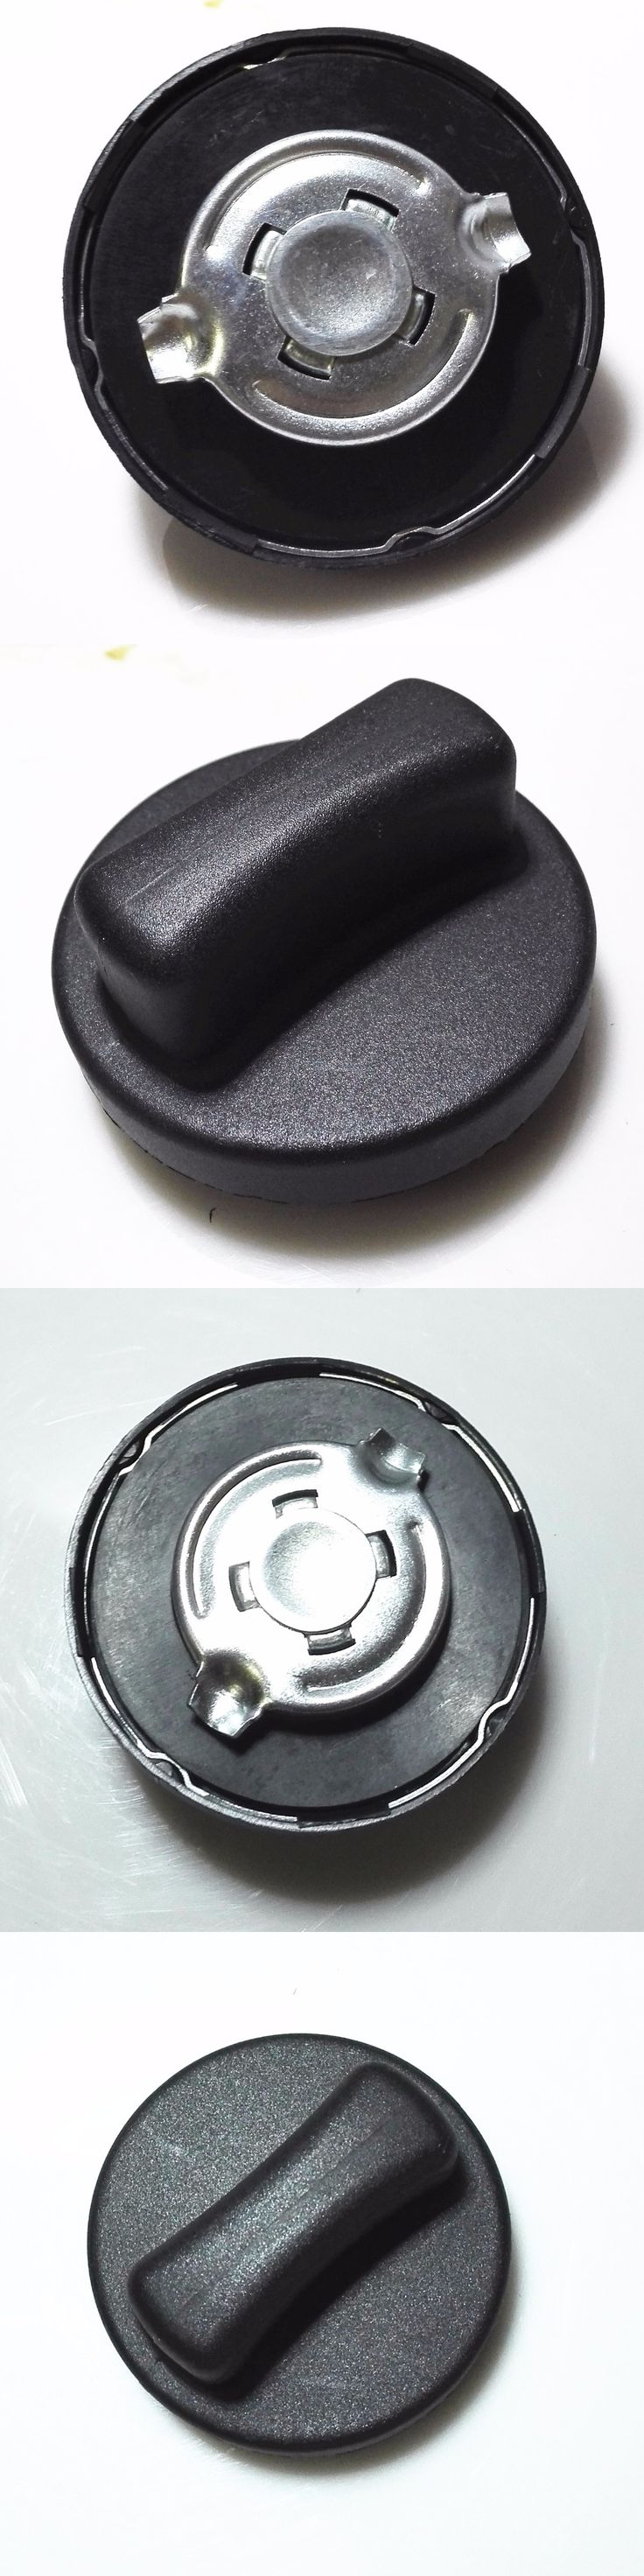 For BMW E12 E23 E24 E30 E31 E34 E36E39 E46 E53 1975-2007 fuel cap 16 11 1 179 872  16 11 1 183 340  16 11 1 184 373